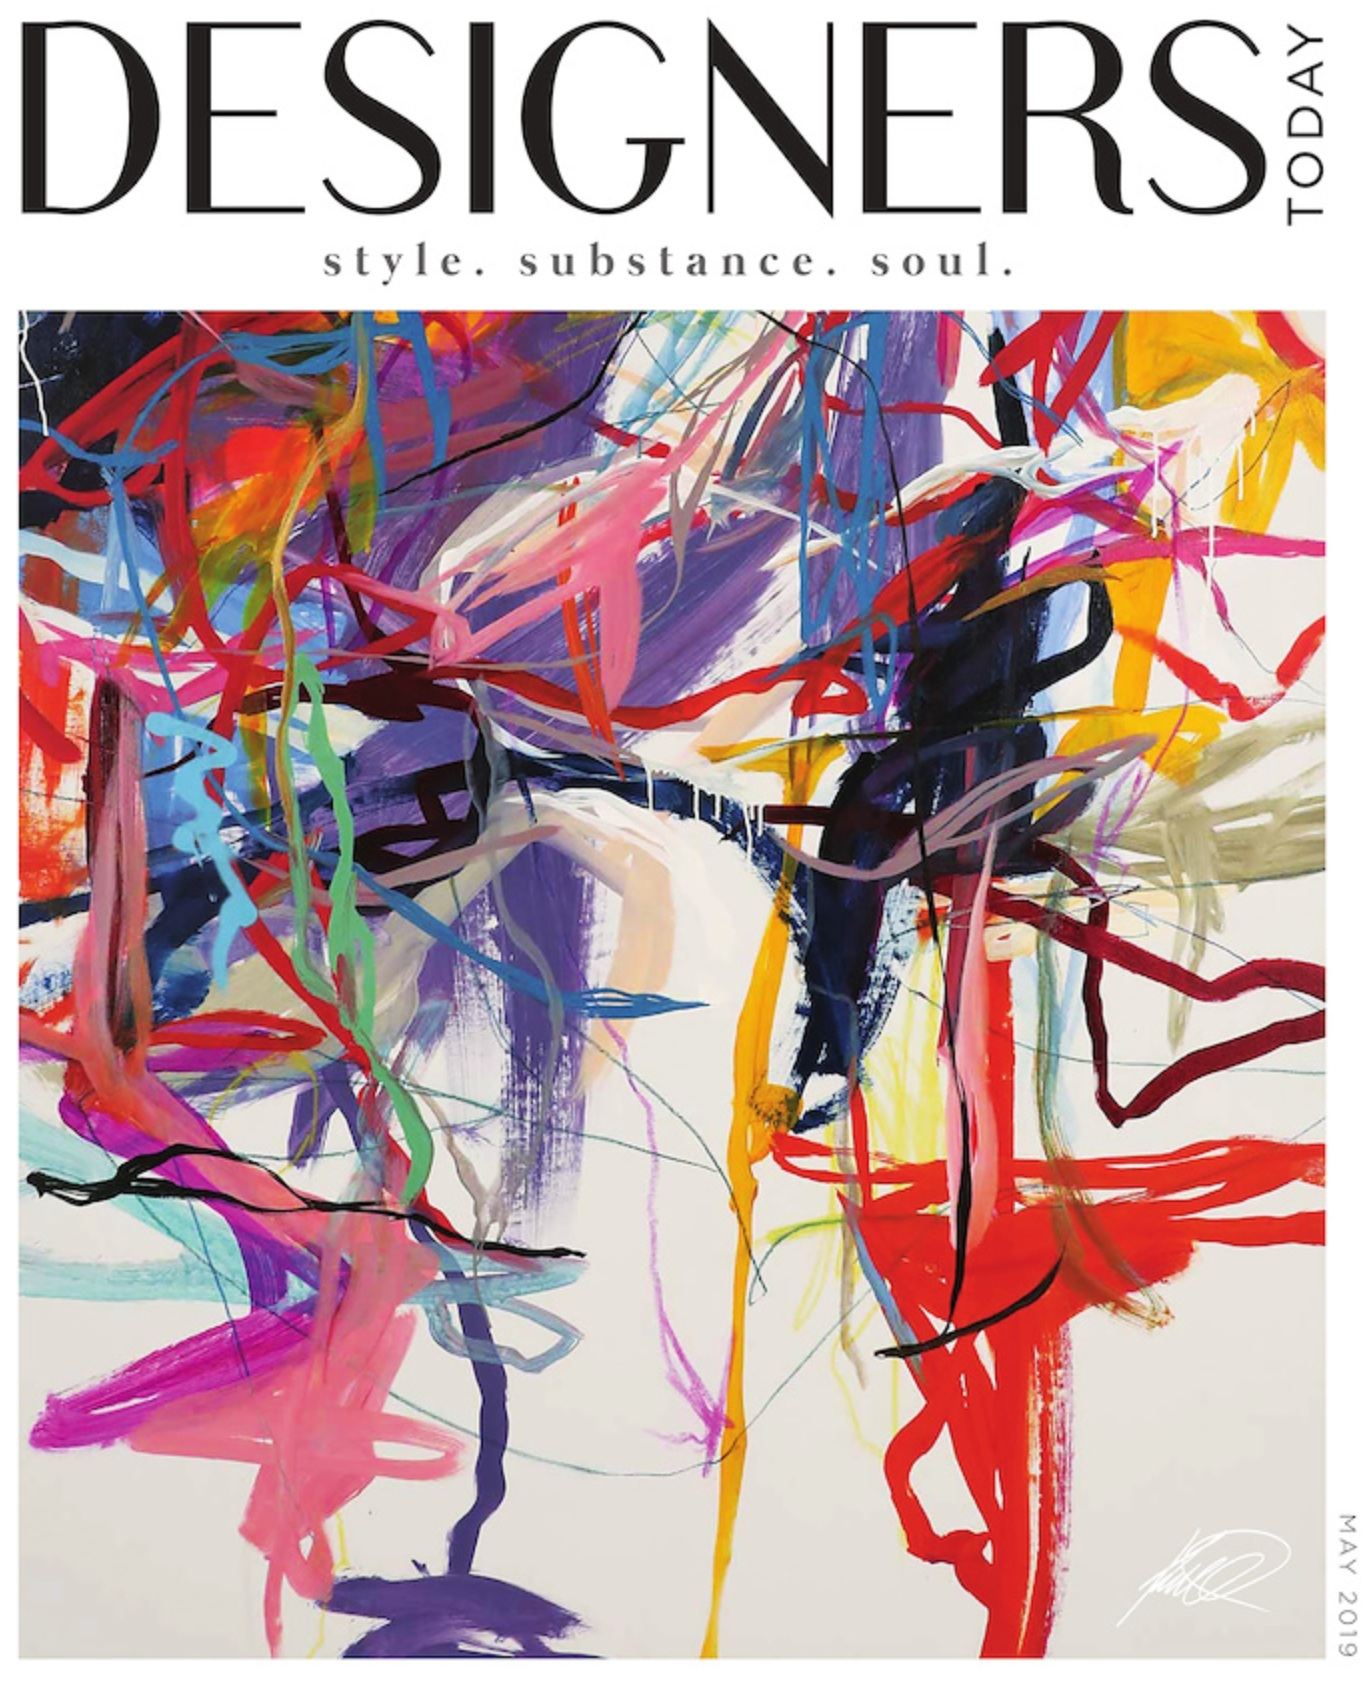 May 2019 Issue of Designers Today